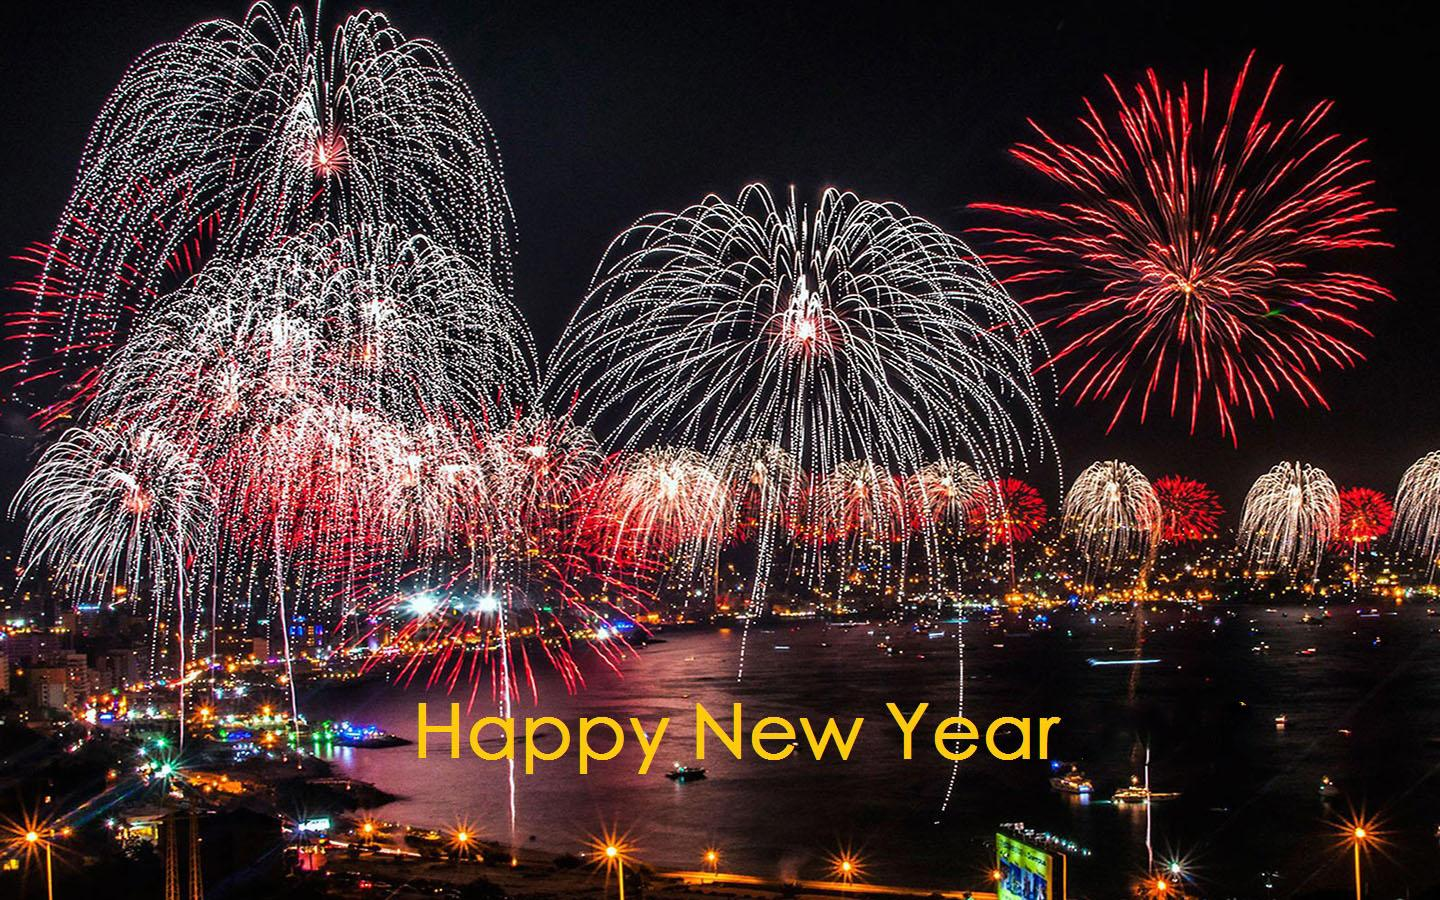 new year fireworks wallpaper photos | free download gamefree